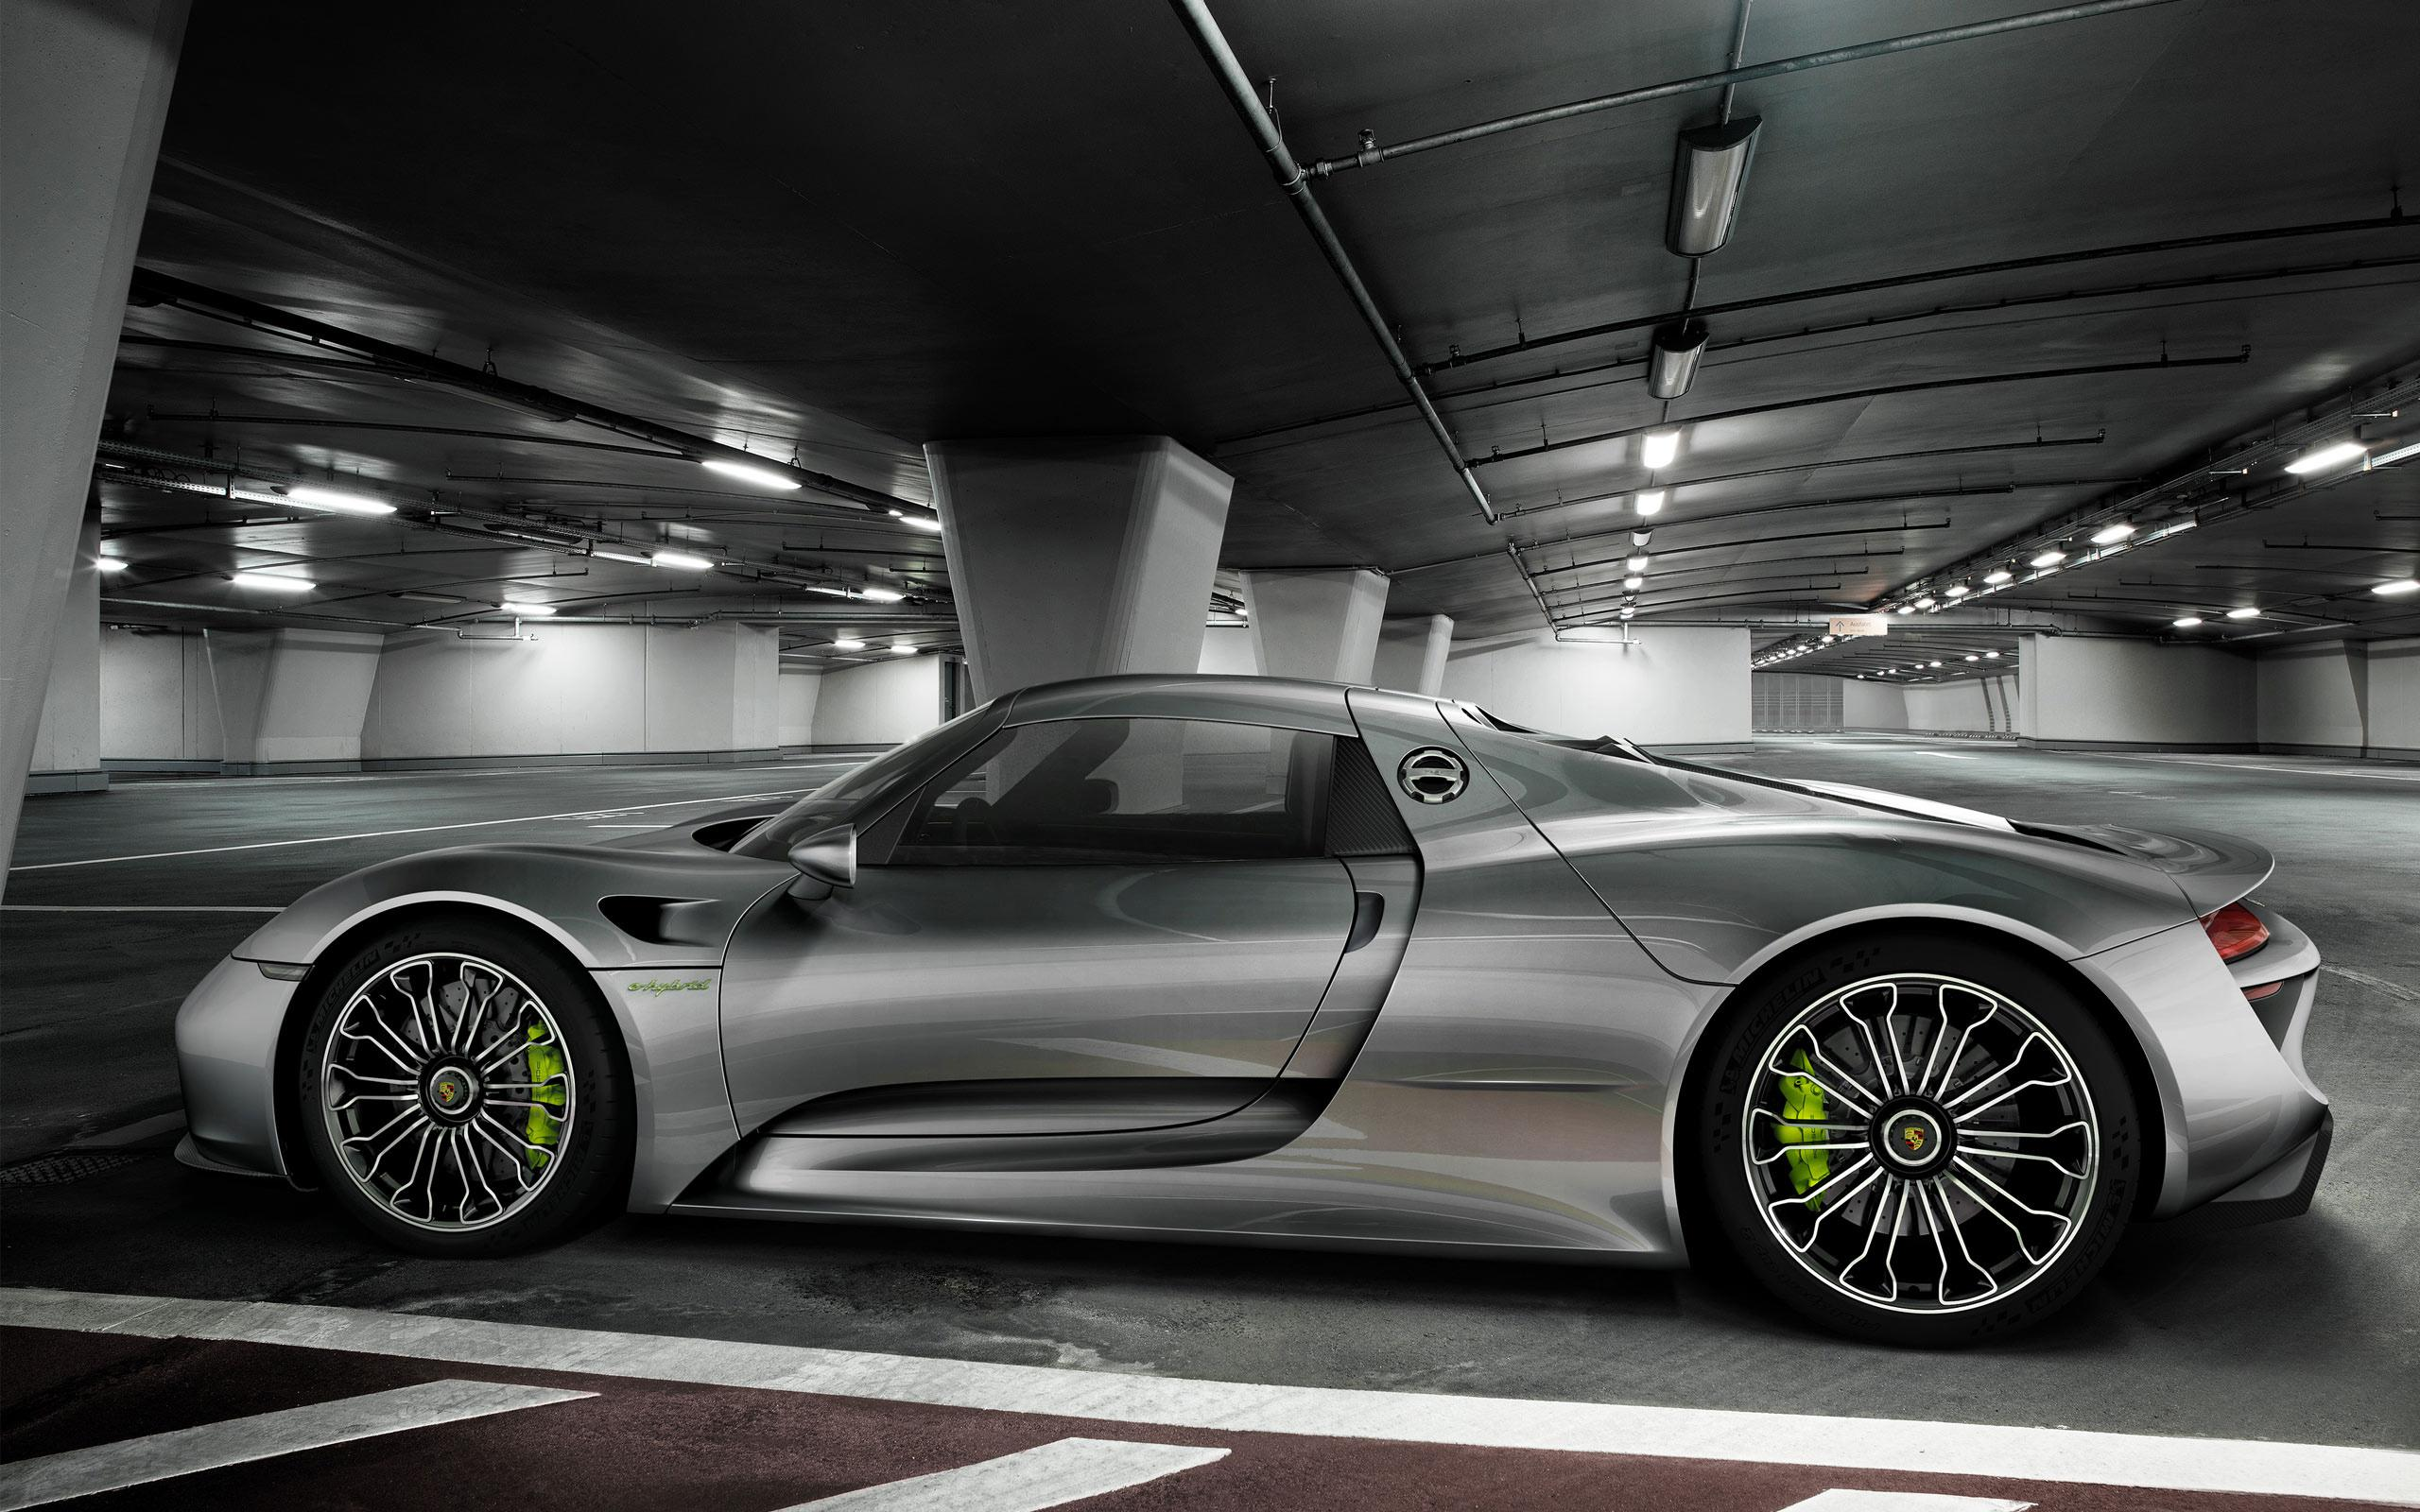 grau porsche 918 spyder hintergrundbilder grau porsche 918 spyder frei fotos. Black Bedroom Furniture Sets. Home Design Ideas